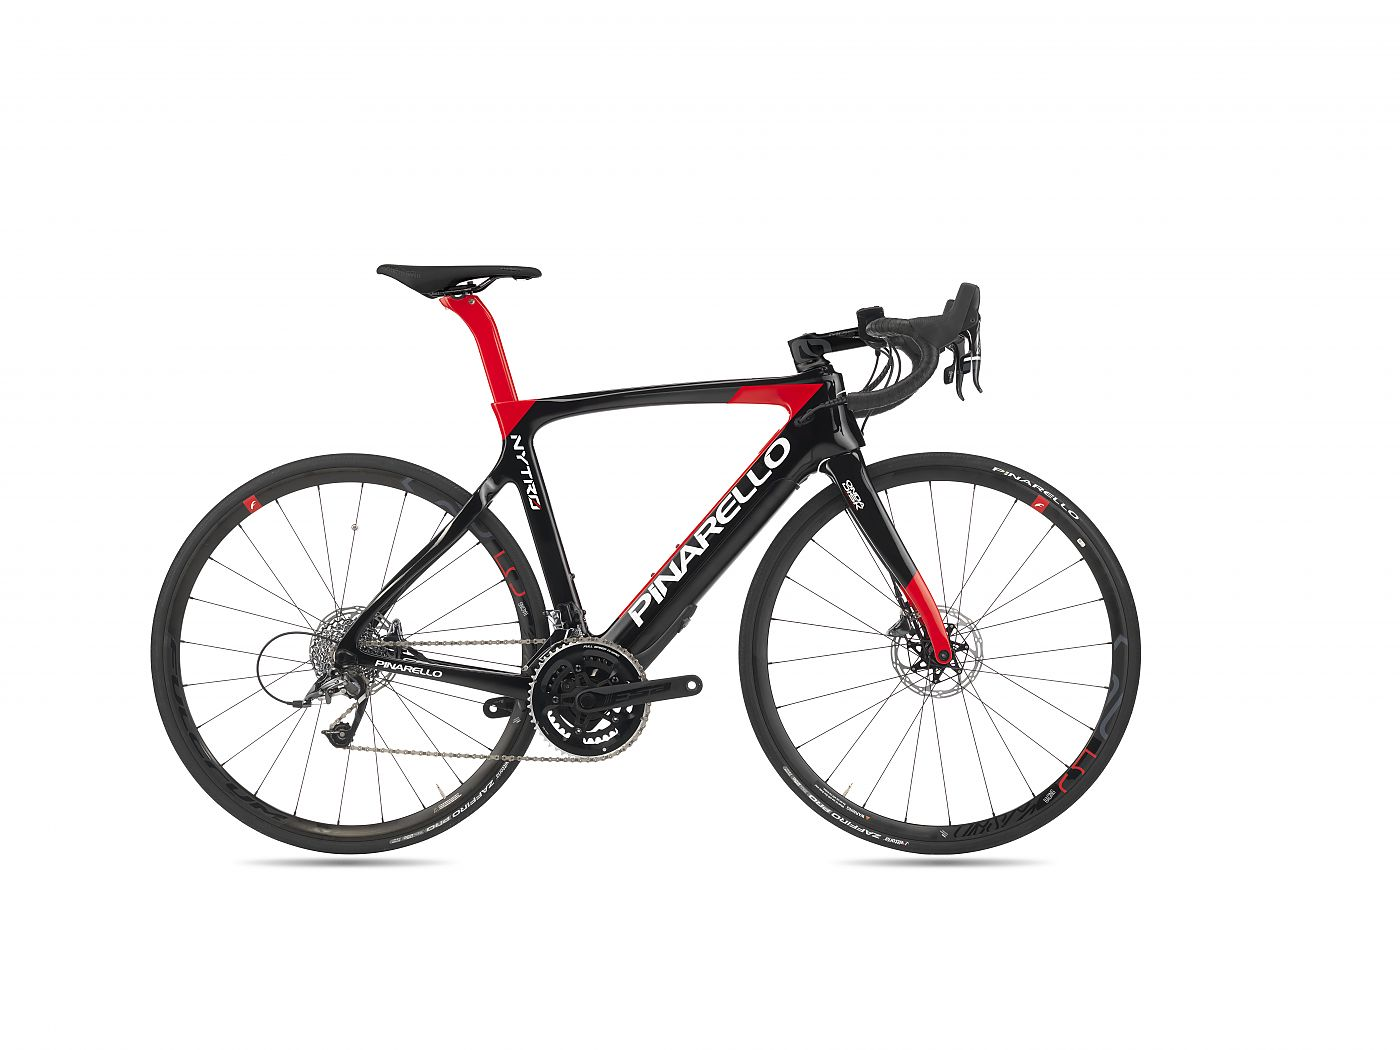 Pinarello Releases E Road Bike Bicycle Retailer And Industry News